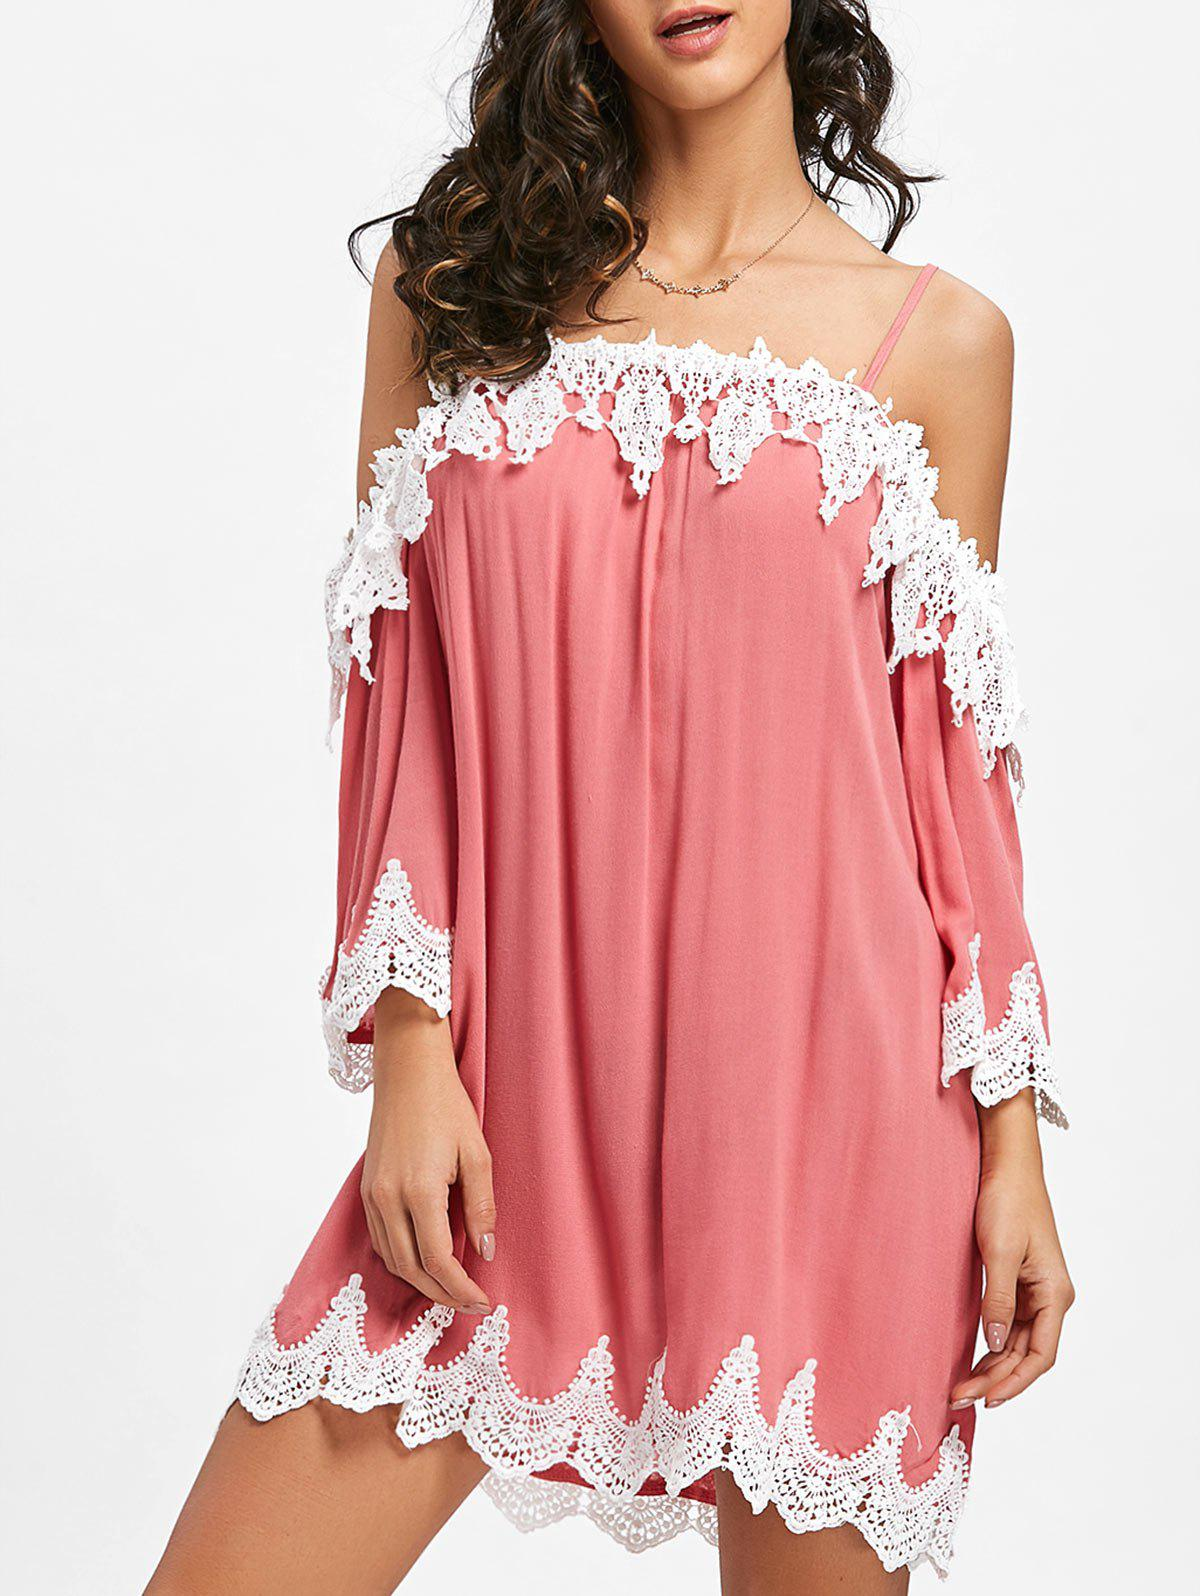 Crochet Trimmed Open Shoulder Mini Dress - PINK S